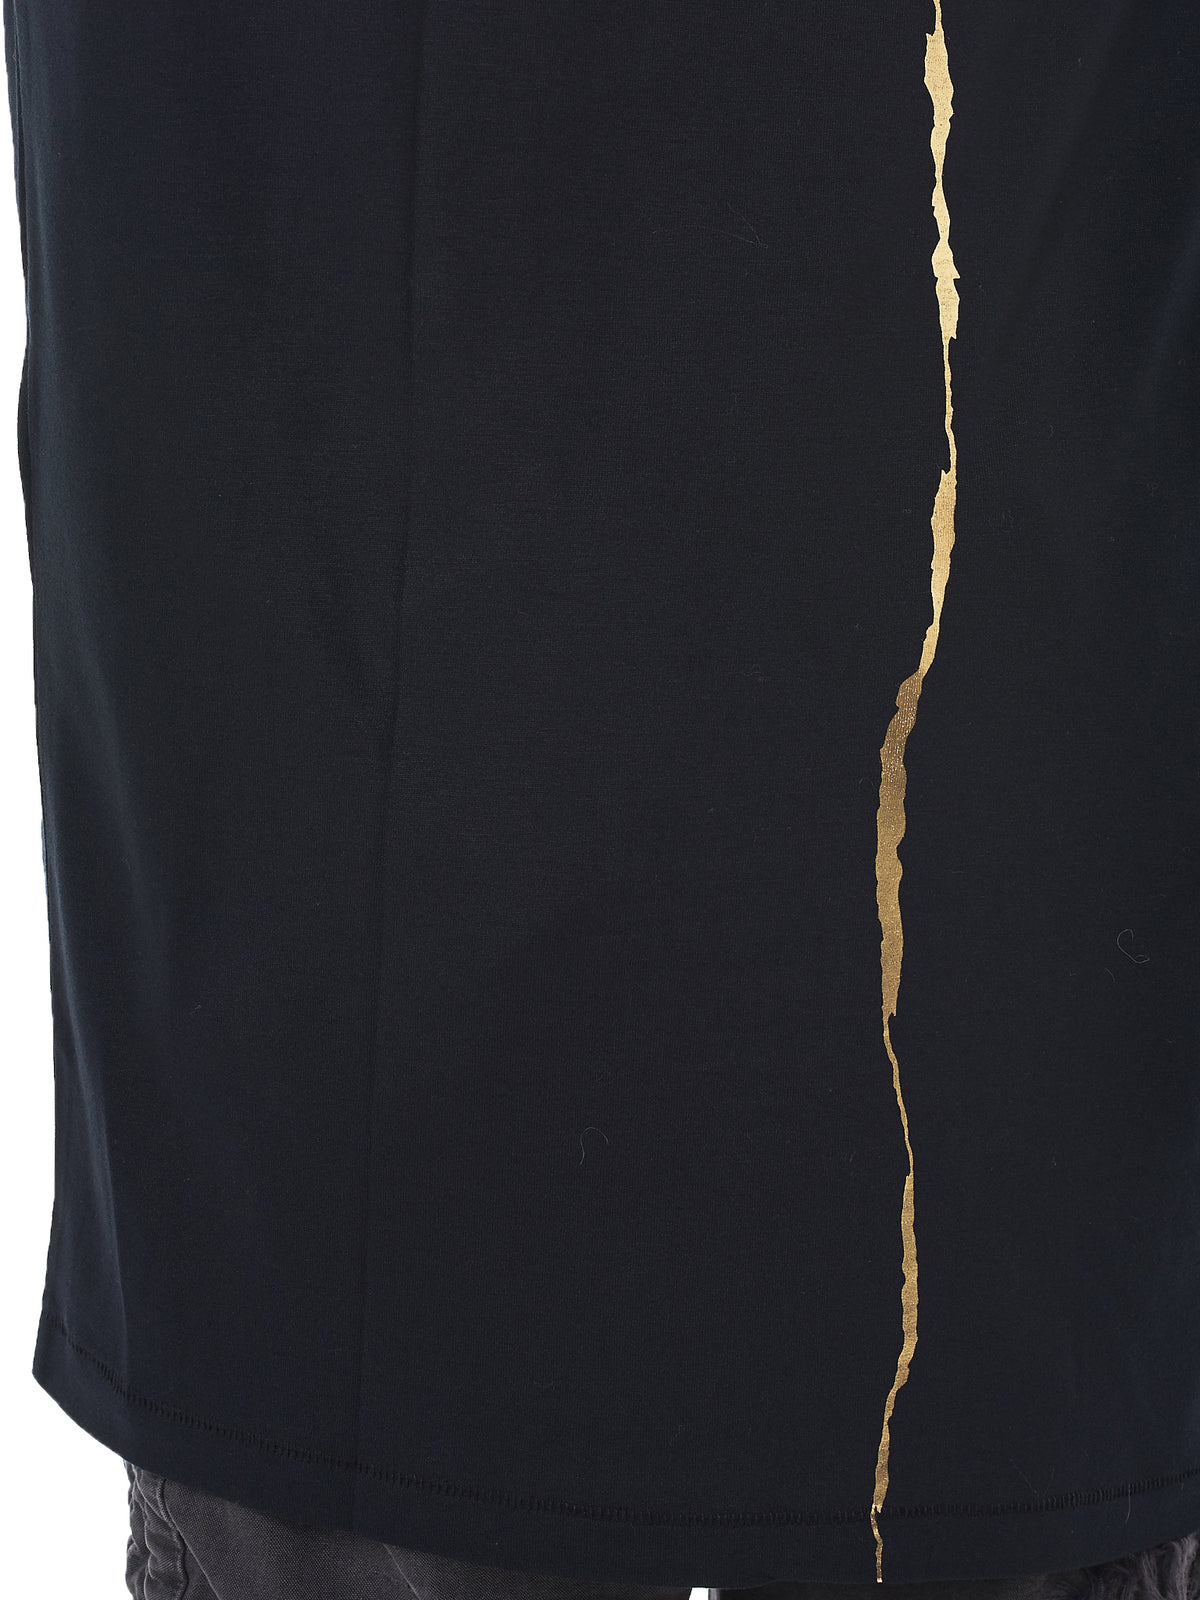 Gold Paint Long-Sleeve Tee (174-2406-229-099)